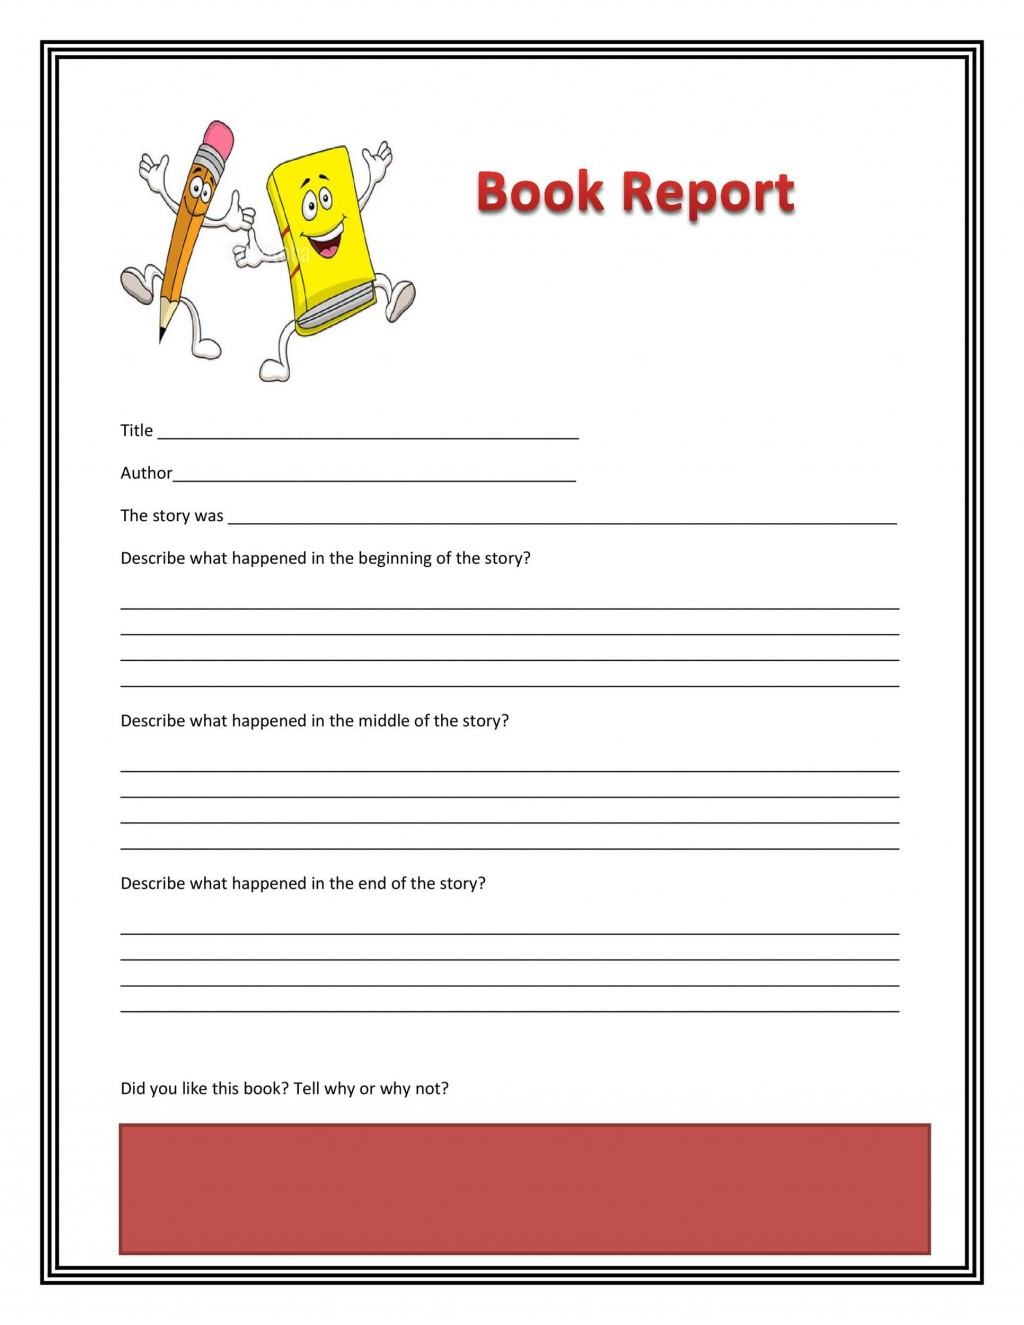 002 Unforgettable Blank Book Report Form 6th Grade Picture  Free Printable TemplateLarge